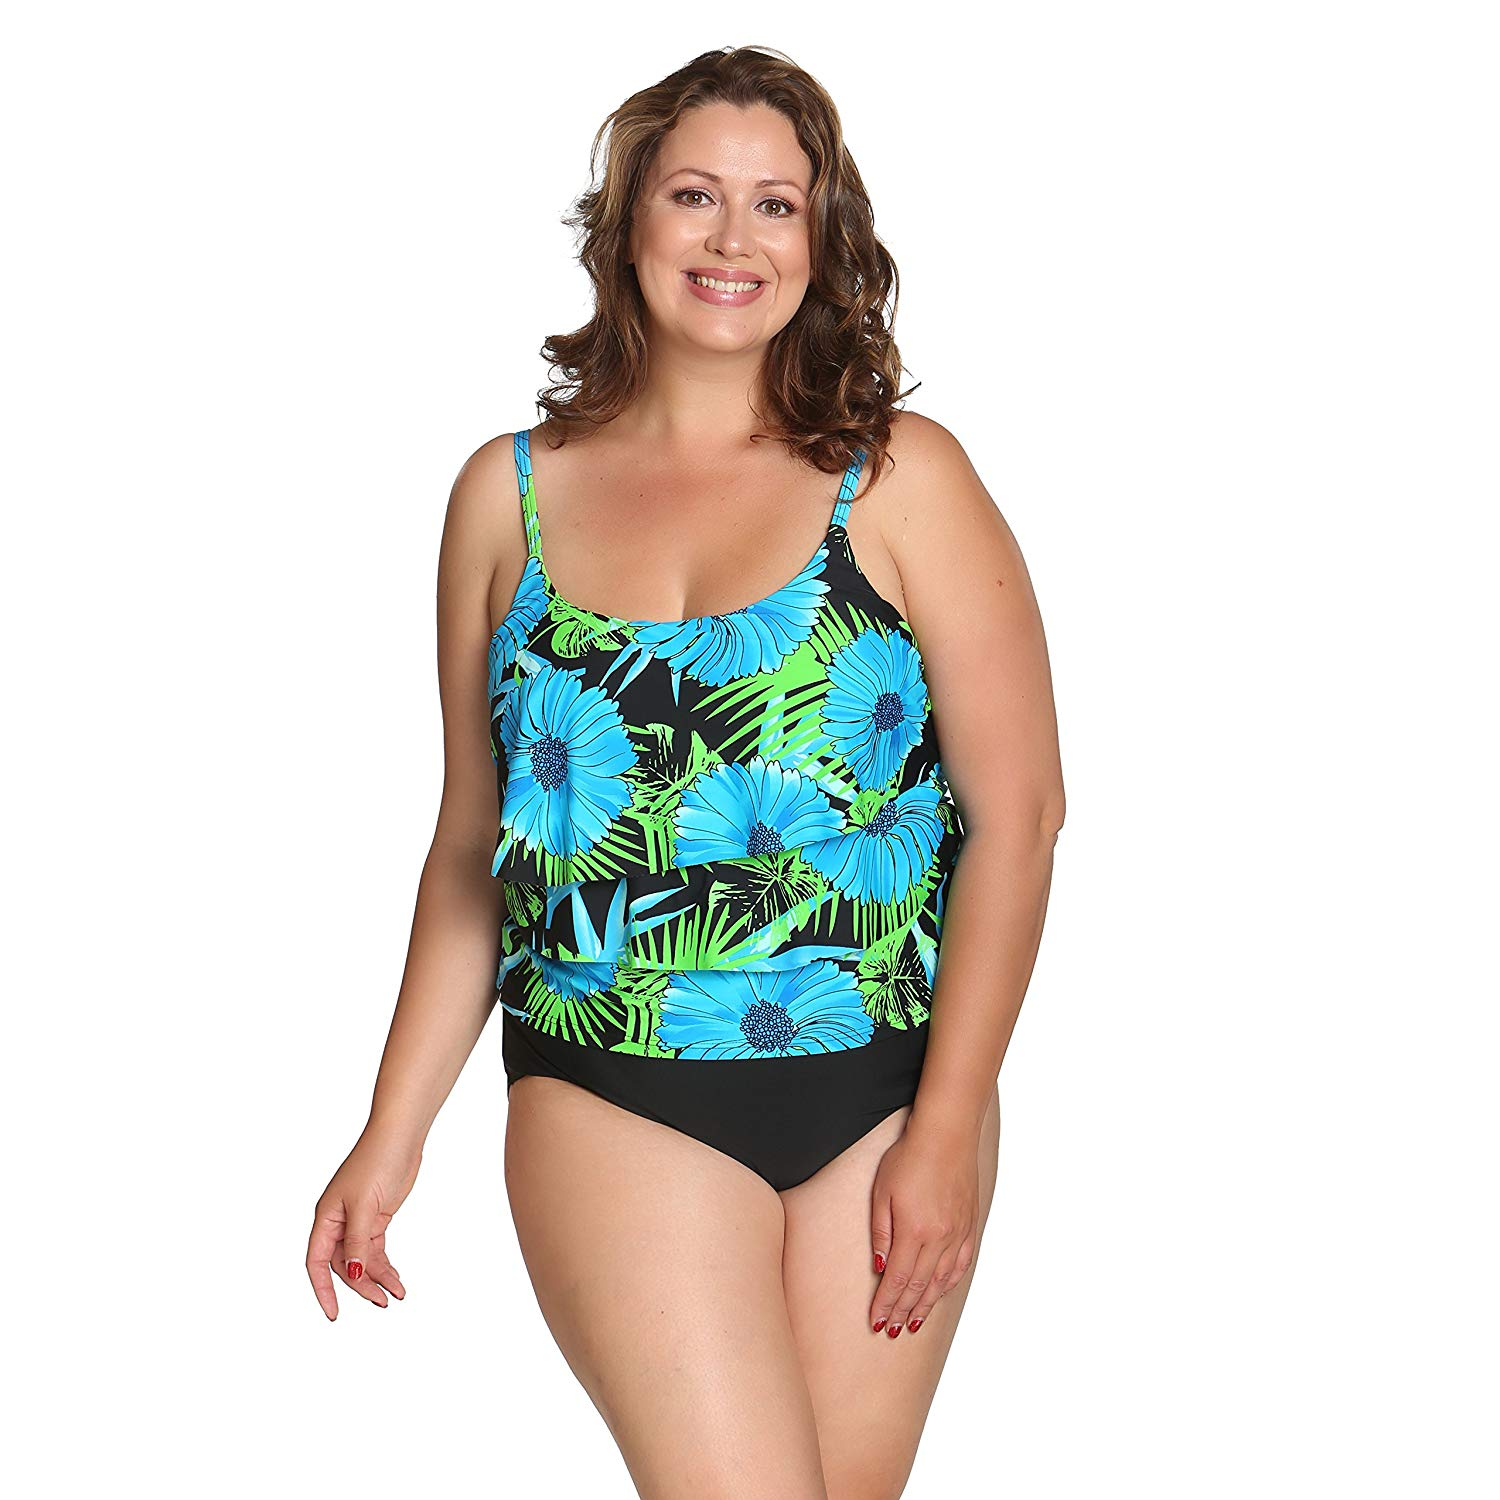 046d12eeea817 Get Quotations · Island Pearls Island World Plus Size Women's Swimsuit  Solid Floral Design Three Tiered One Piece Swimsuit